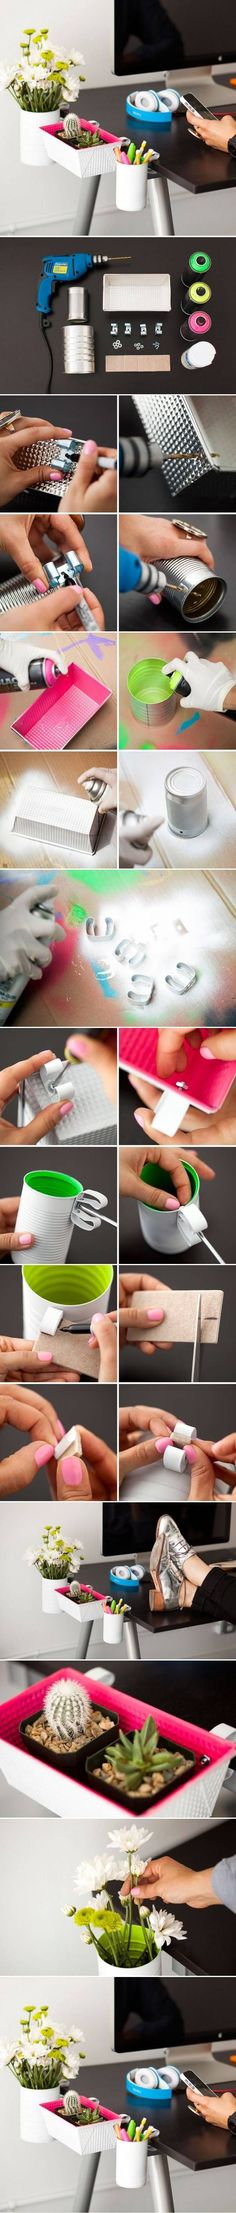 Great idea to keep sewing tools handy but still off the working area of the table.